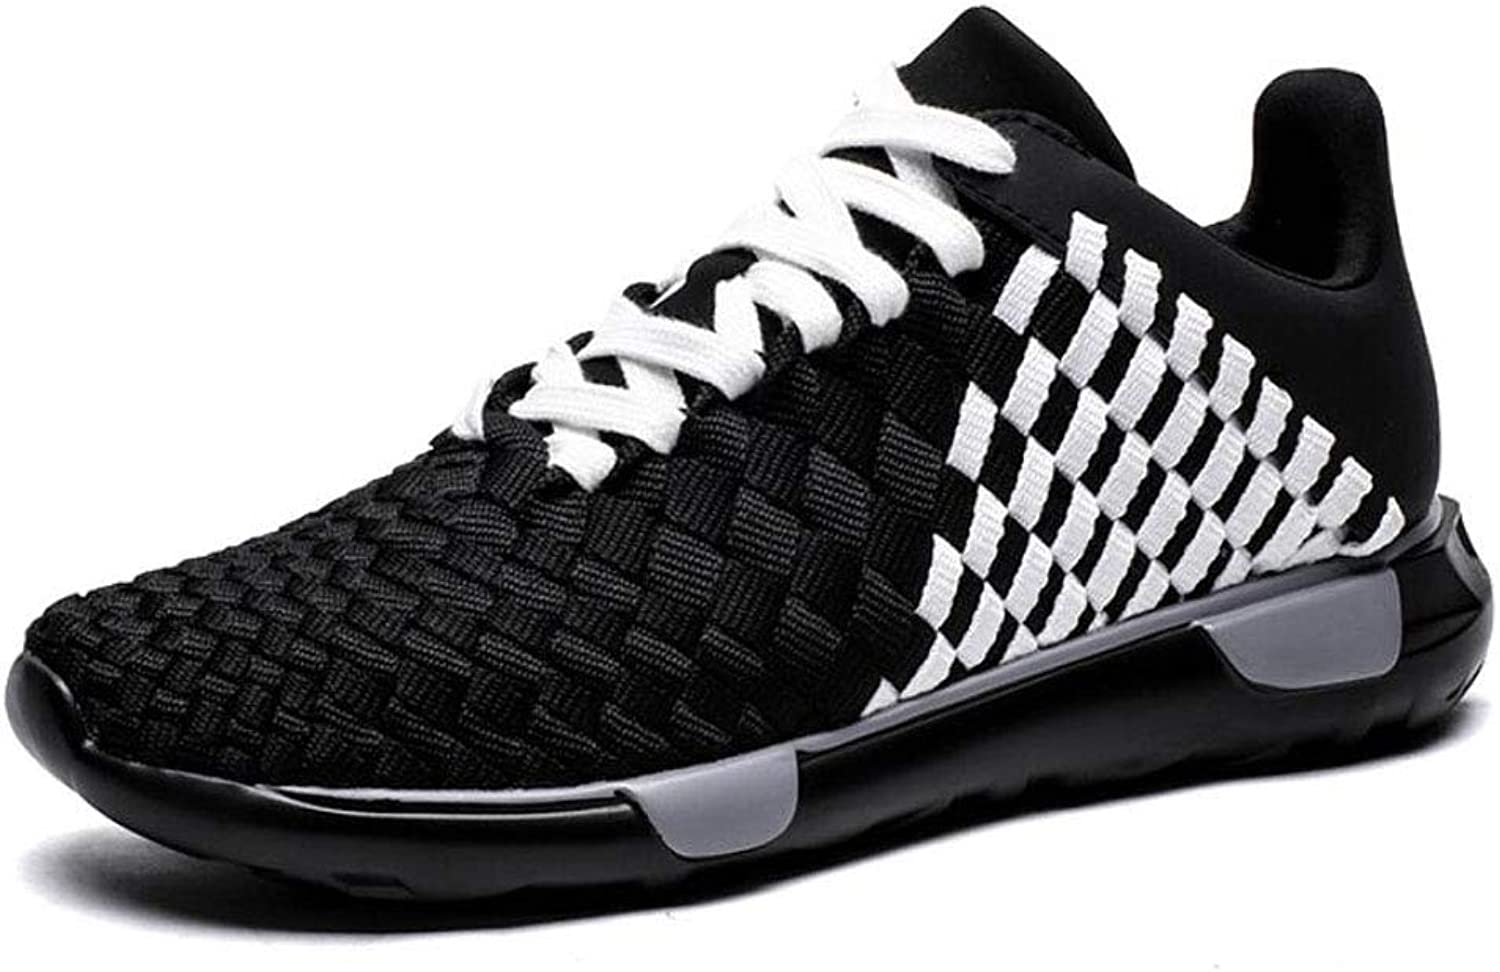 ZIXUAP Men's Athletic Walking shoes - Casual Mesh Lightweight Running Slip On Sneakers